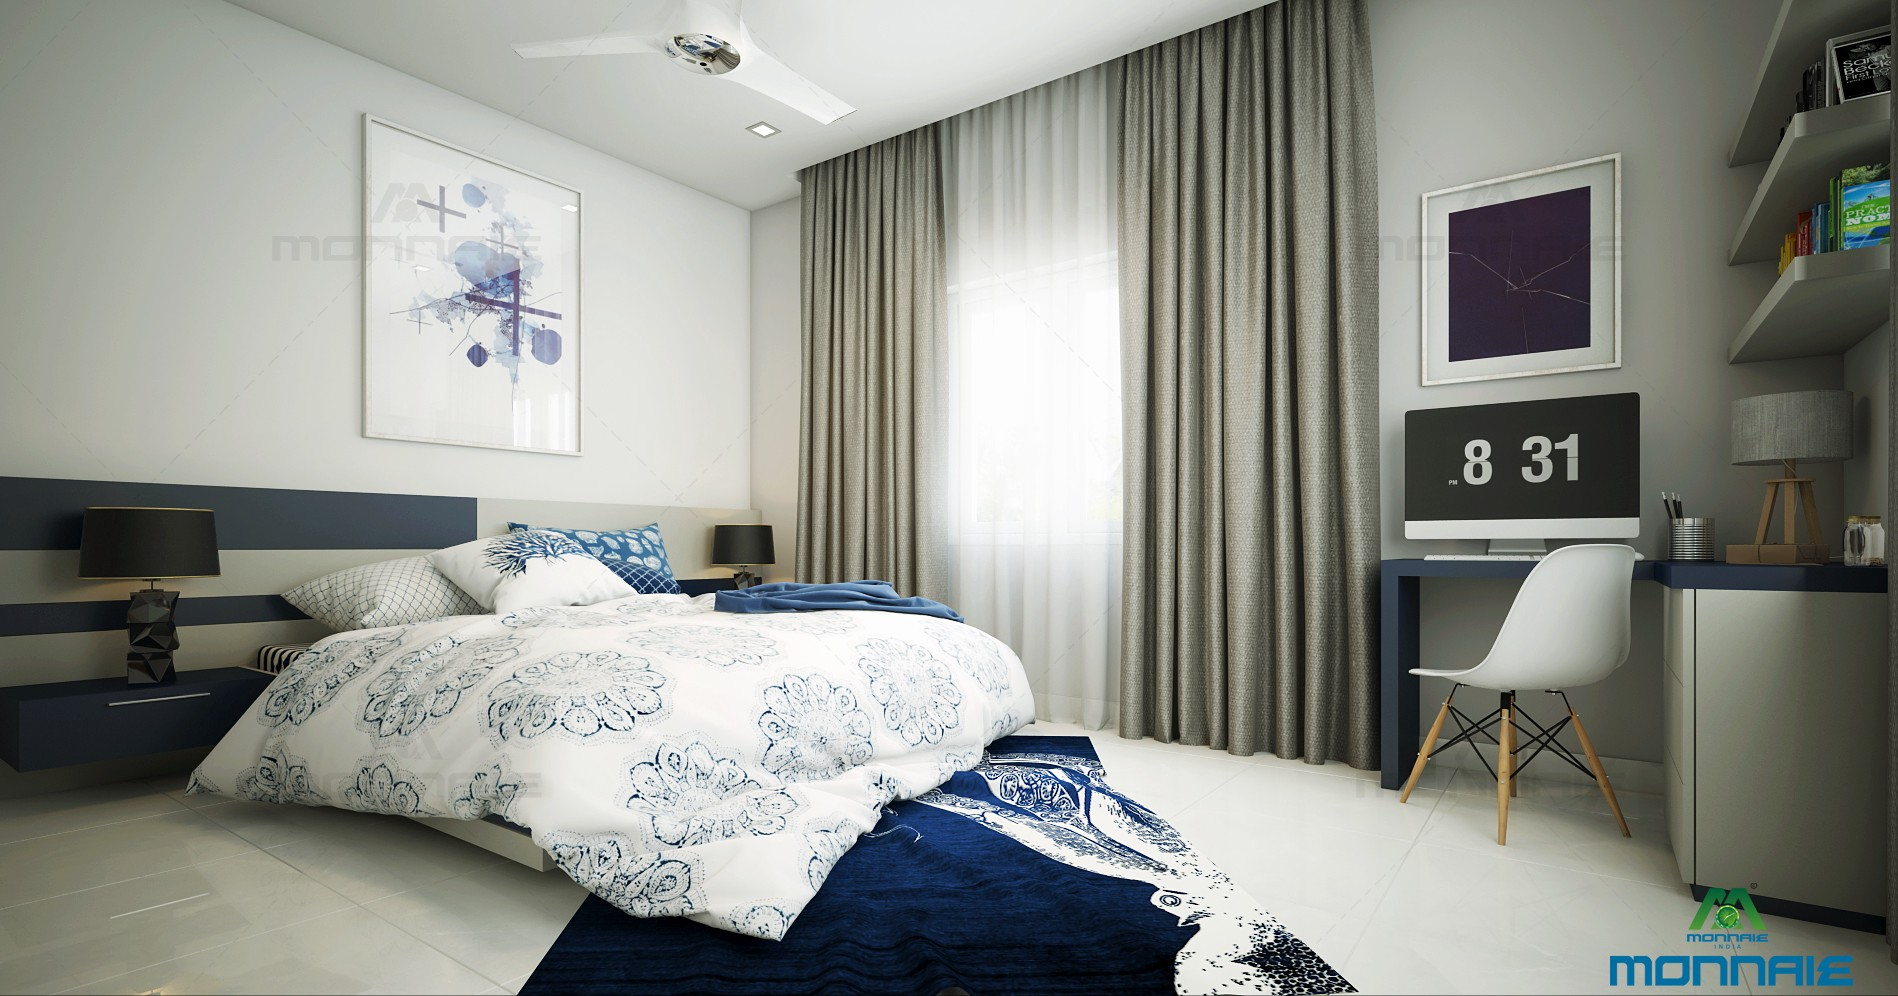 Bedroom Interiors In Cochin Customized Bedroom Interior Designs From Monnaie Kerala By Monnaie Architects Interiors Medium